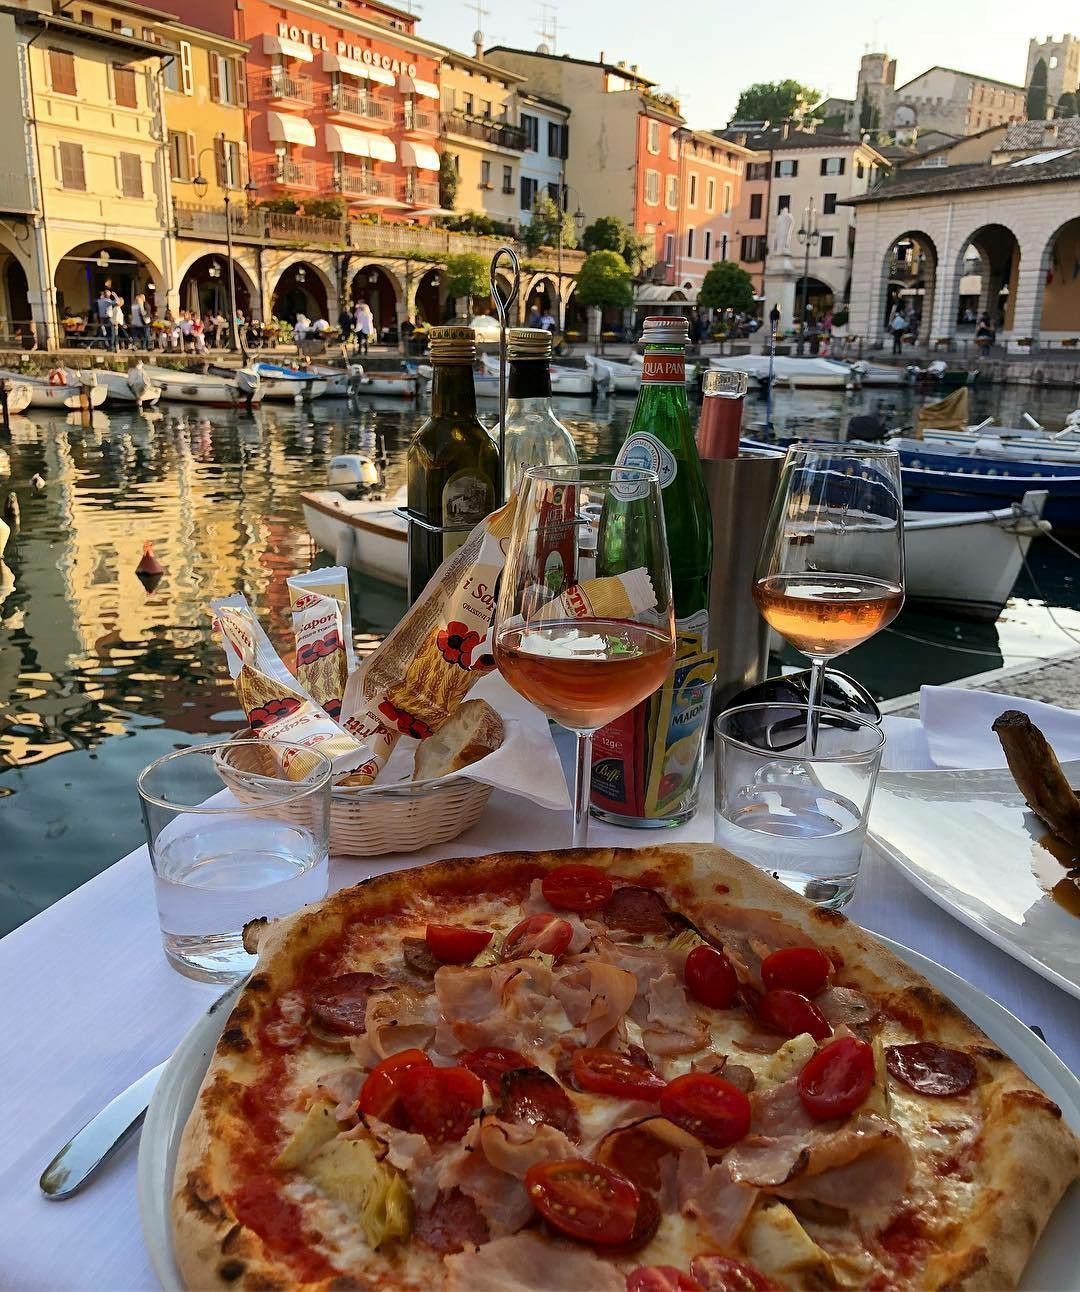 Venice Italy Summer Love Cleanness River City Pizza Wine Dinner Romance Beautiful View Wo Food Veggie Casserole Healthy Pizza